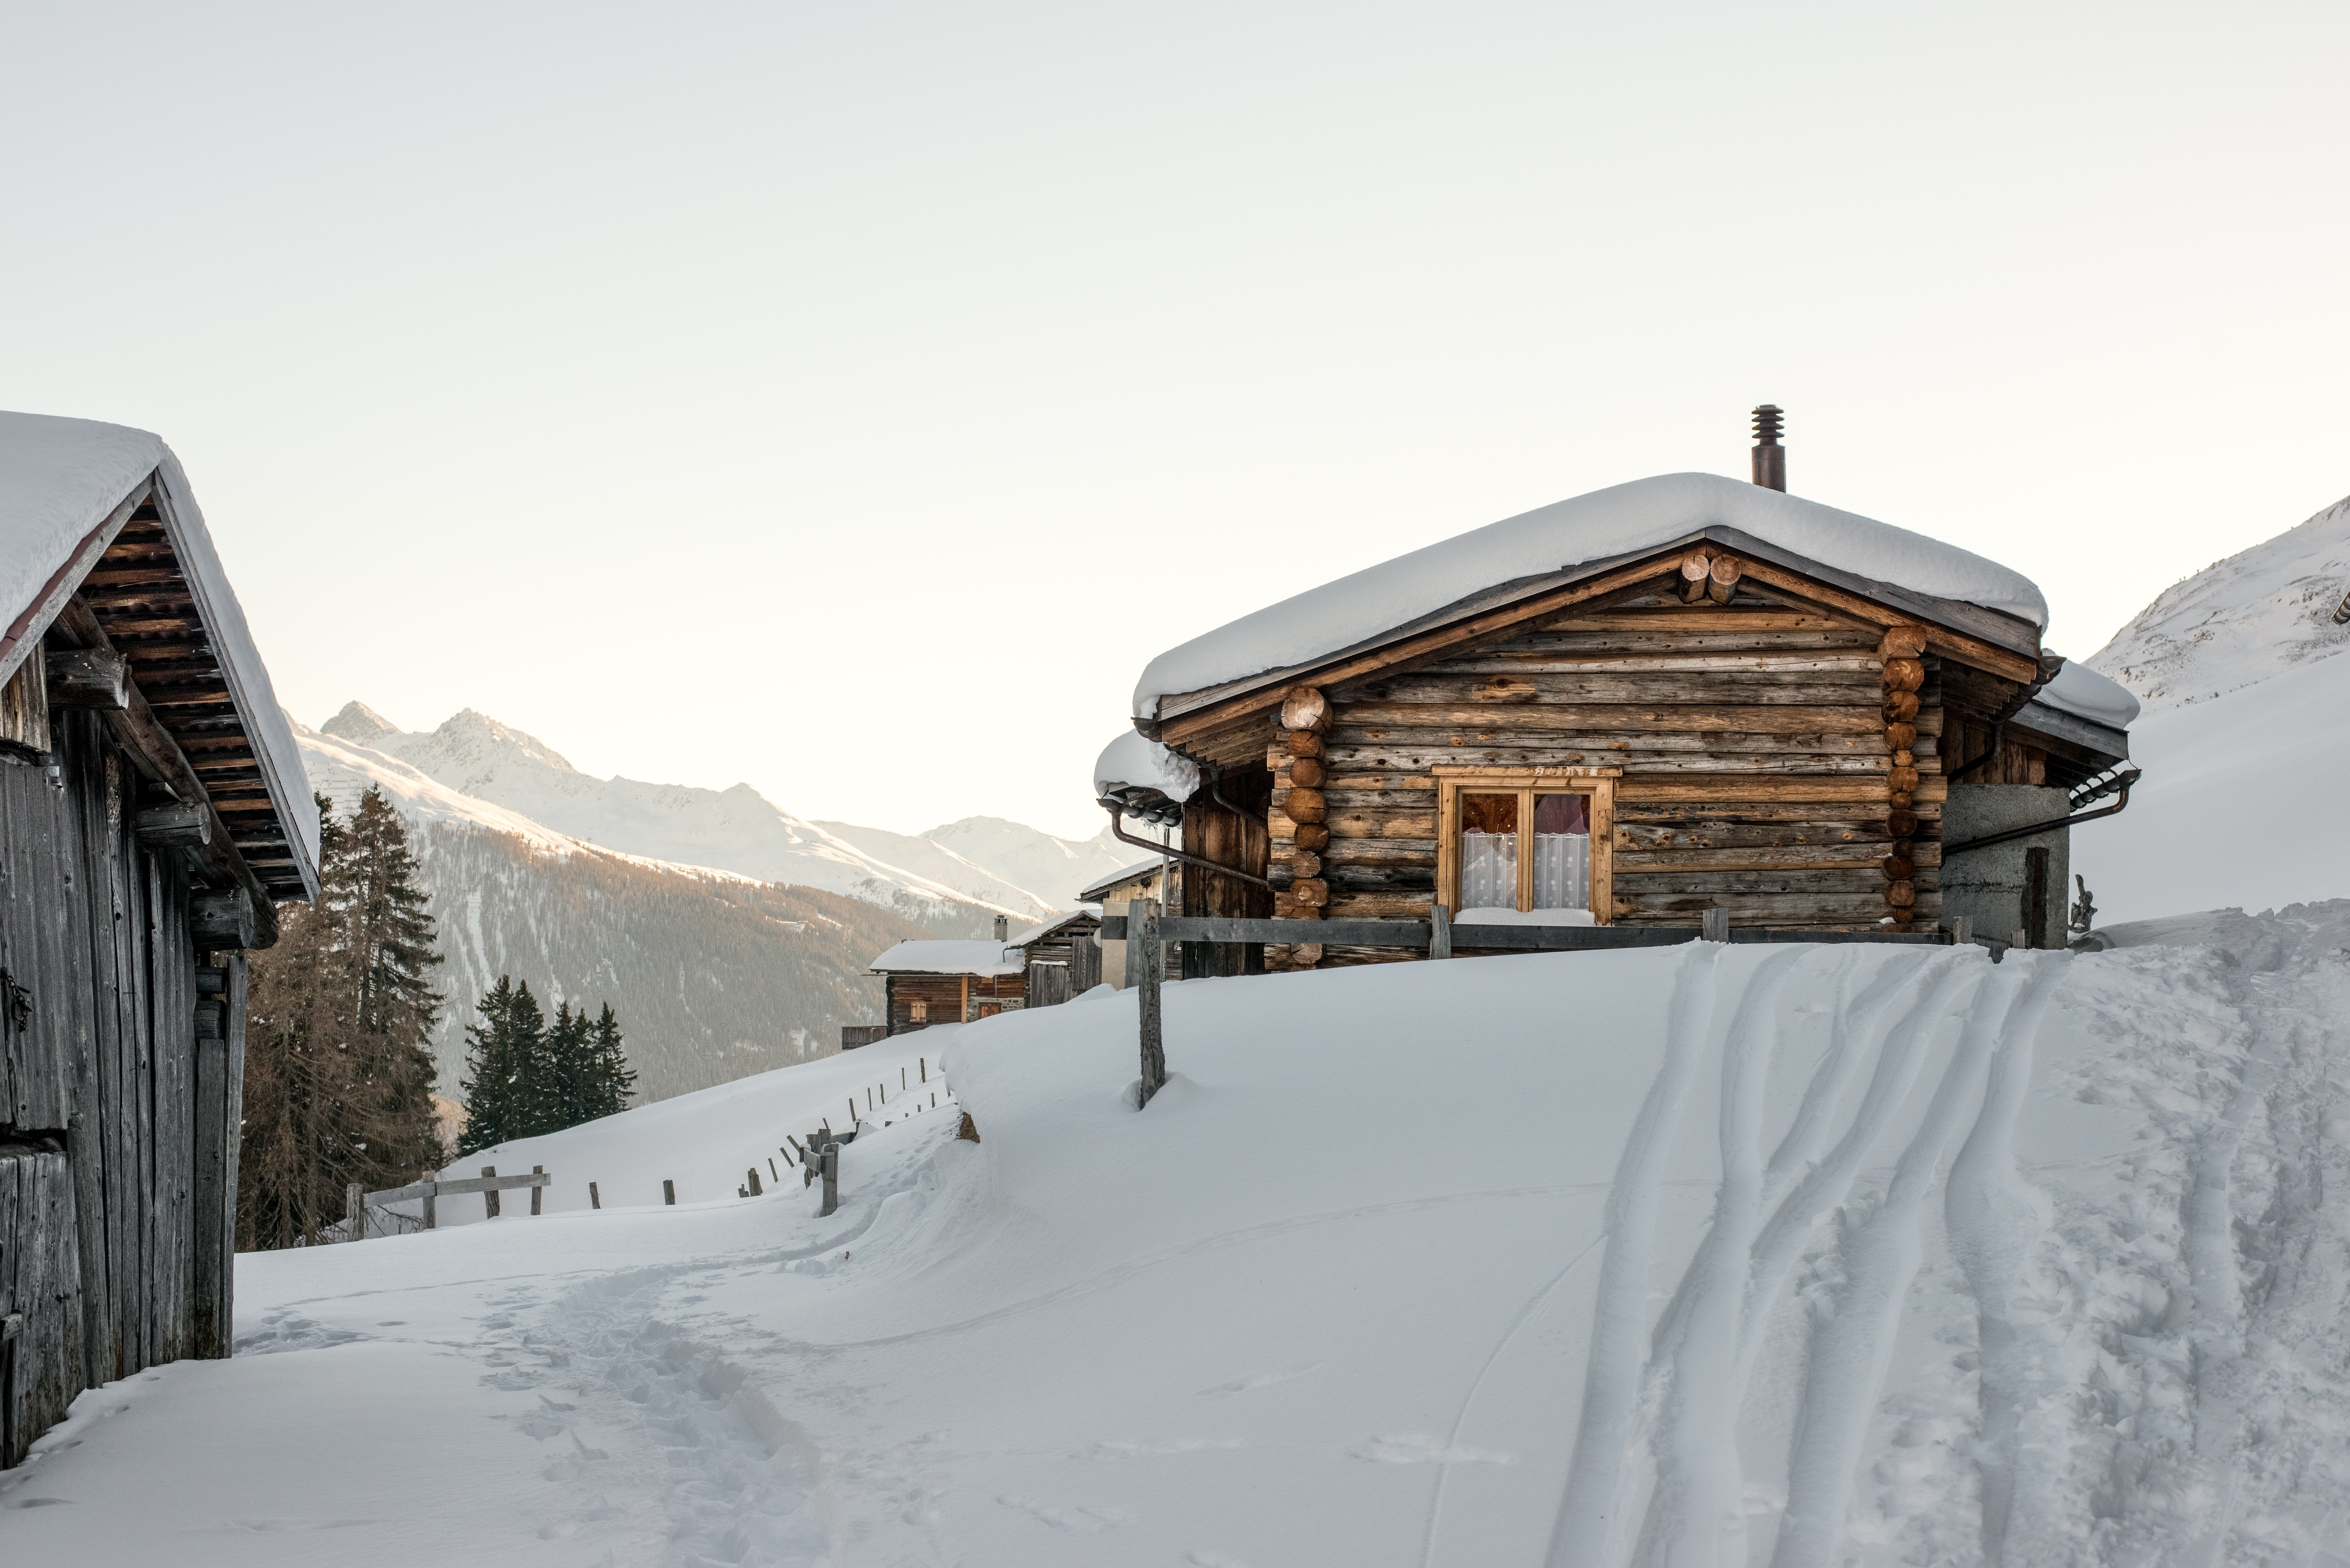 A cottage covered in snow with vehicle tracks at the Klosters Parsenn ski resort